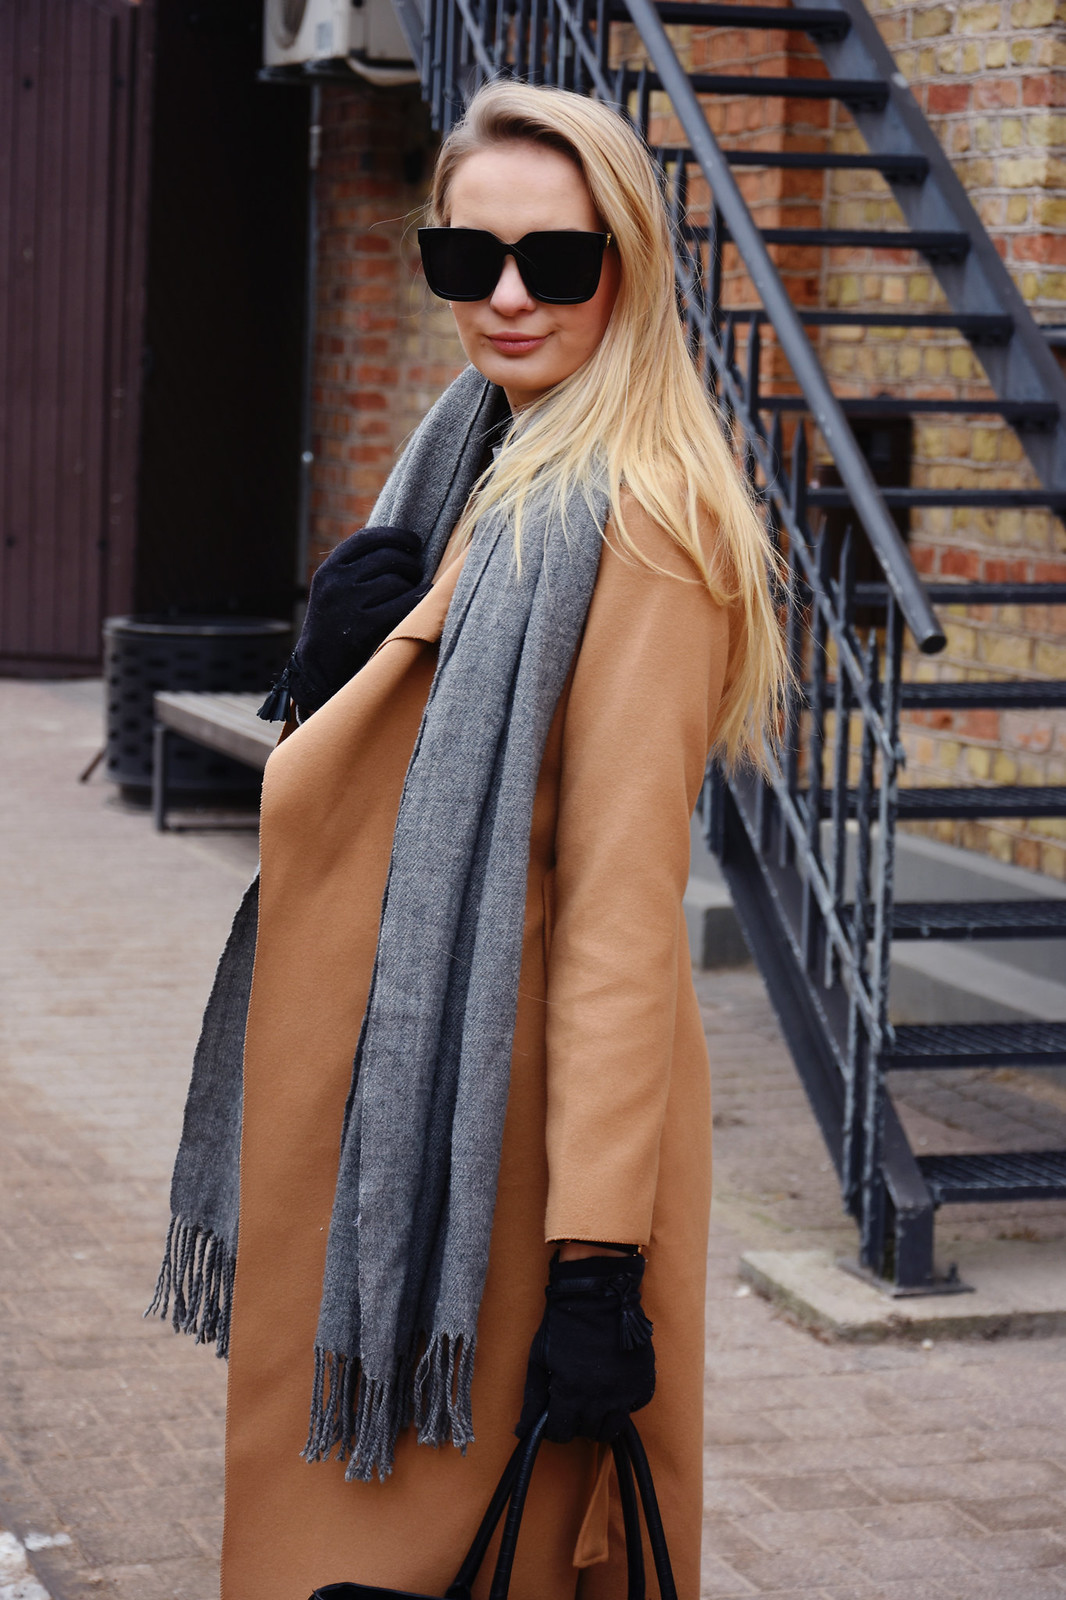 Camel coat winter outfit